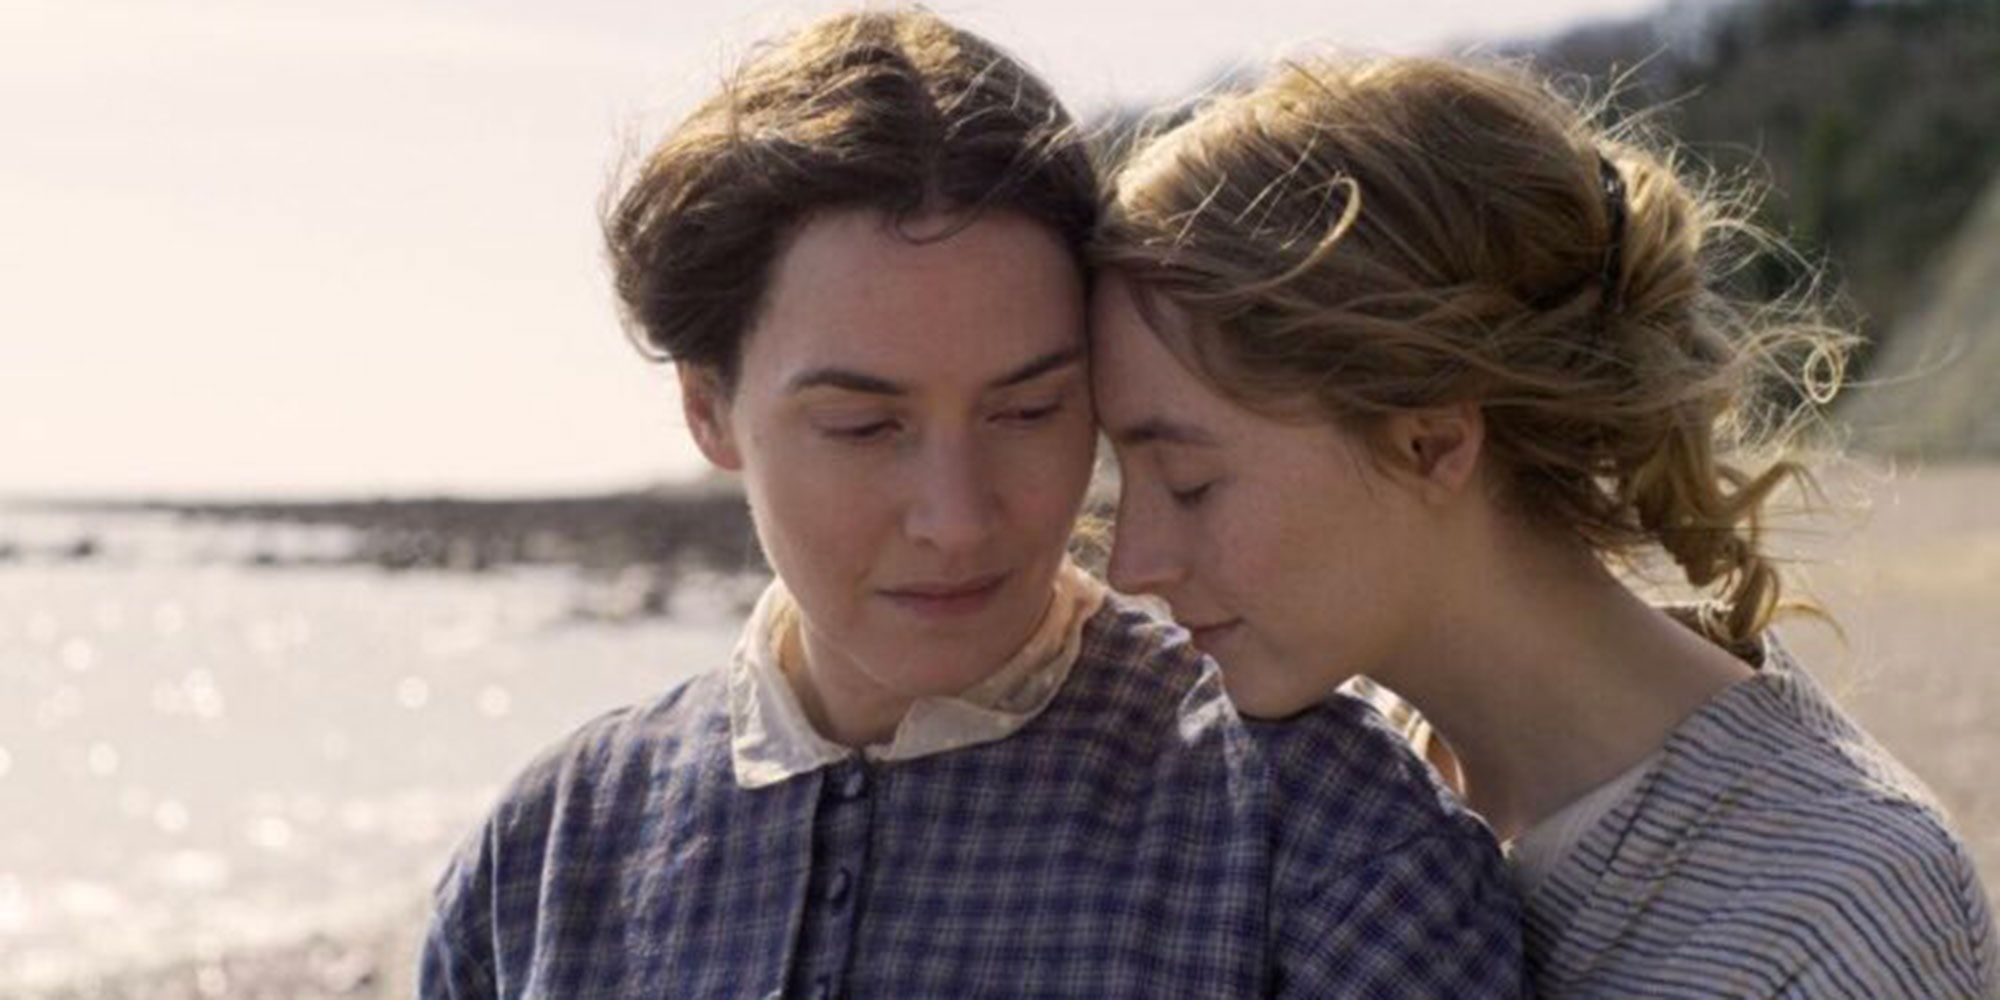 Kate Winslet and Saoirse Ronan in lesbian film Ammonite first look